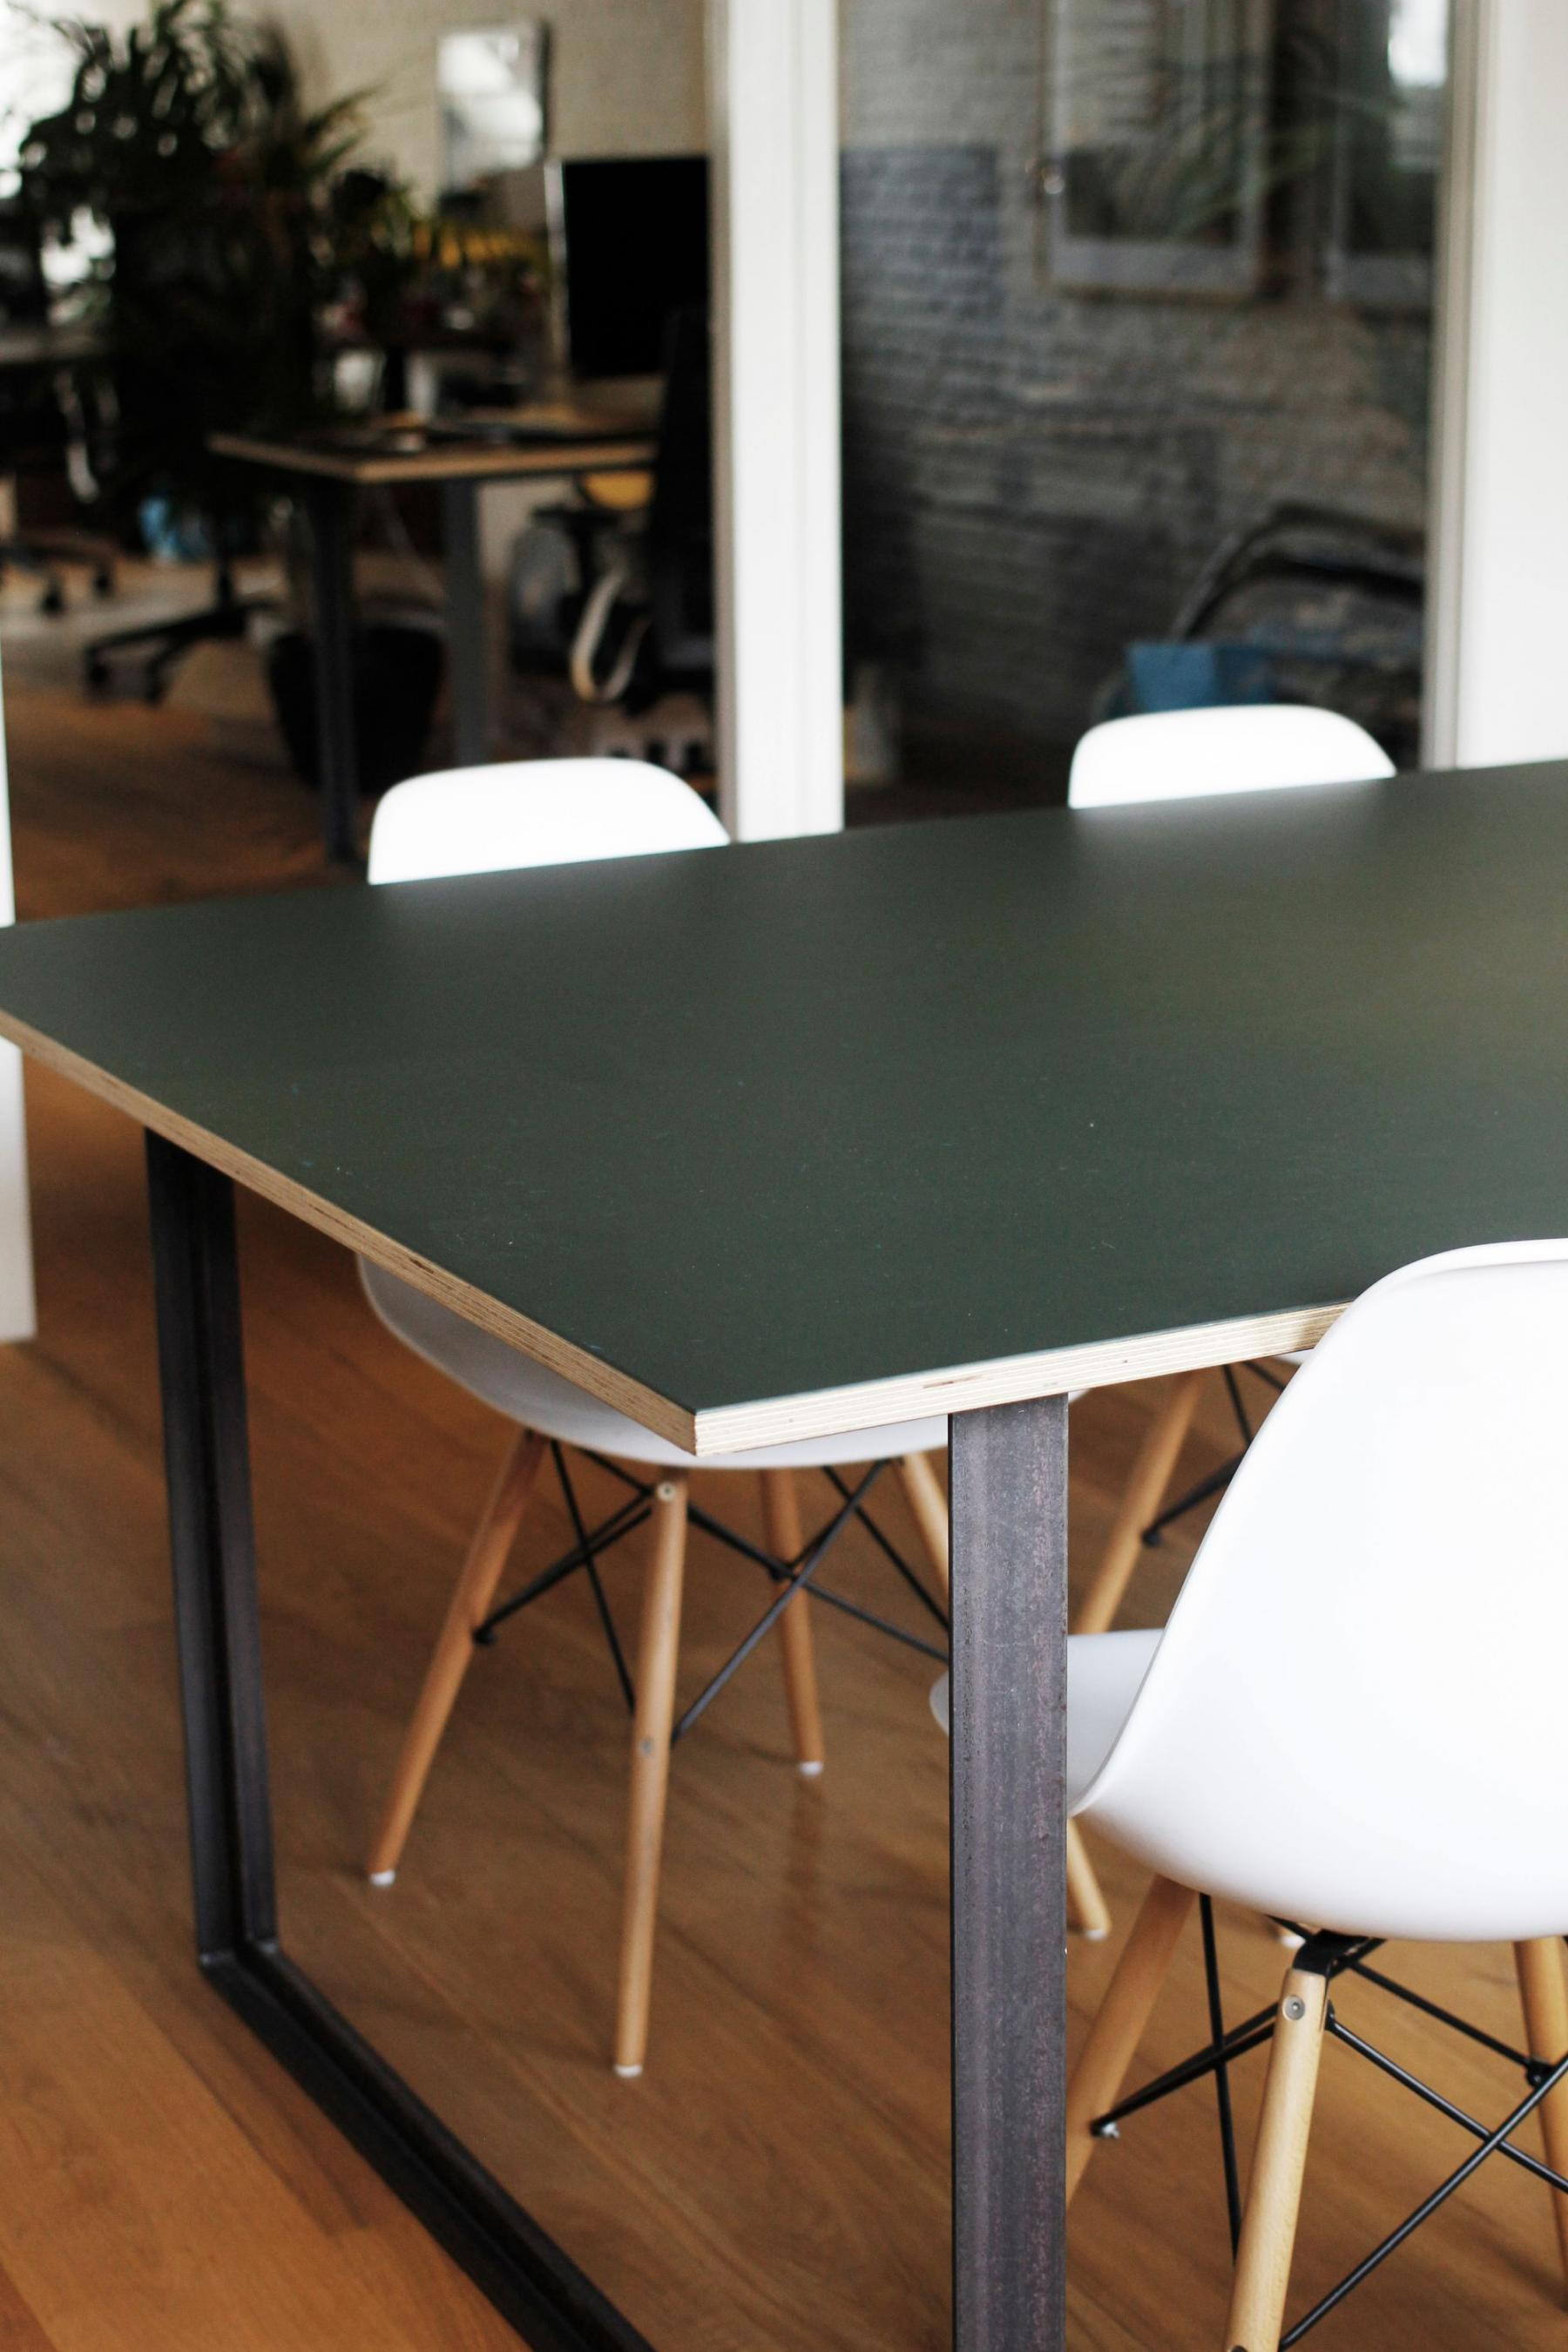 Office space for rent at the Brouwersgracht